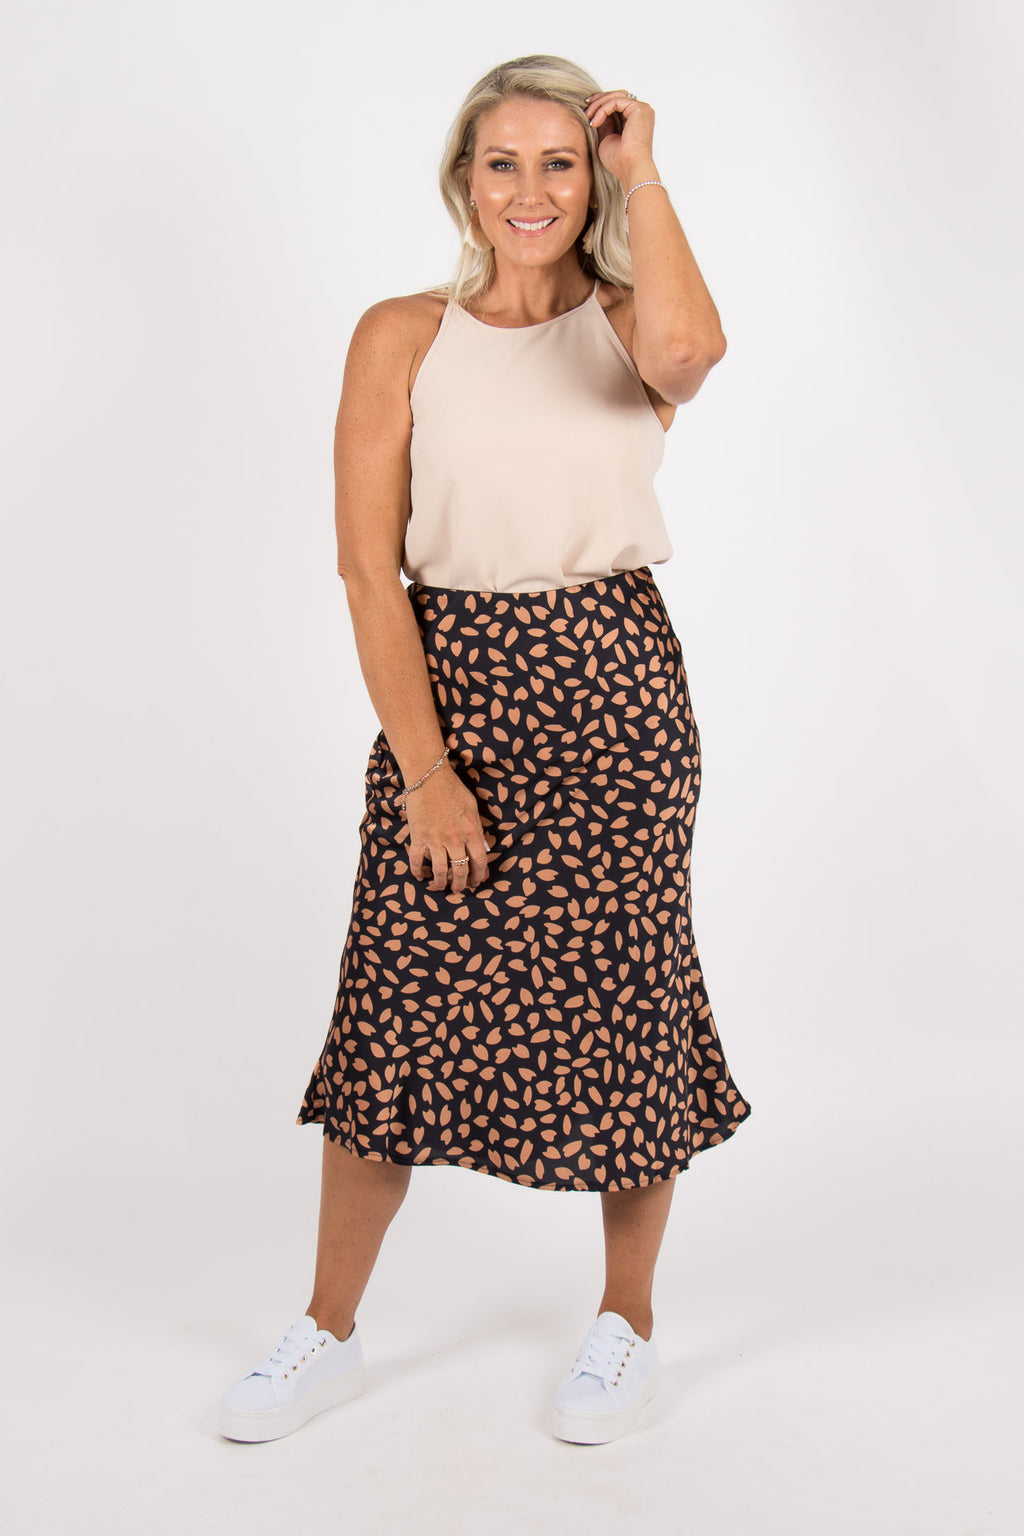 Rozelle Skirt in Navy/Rose Gold